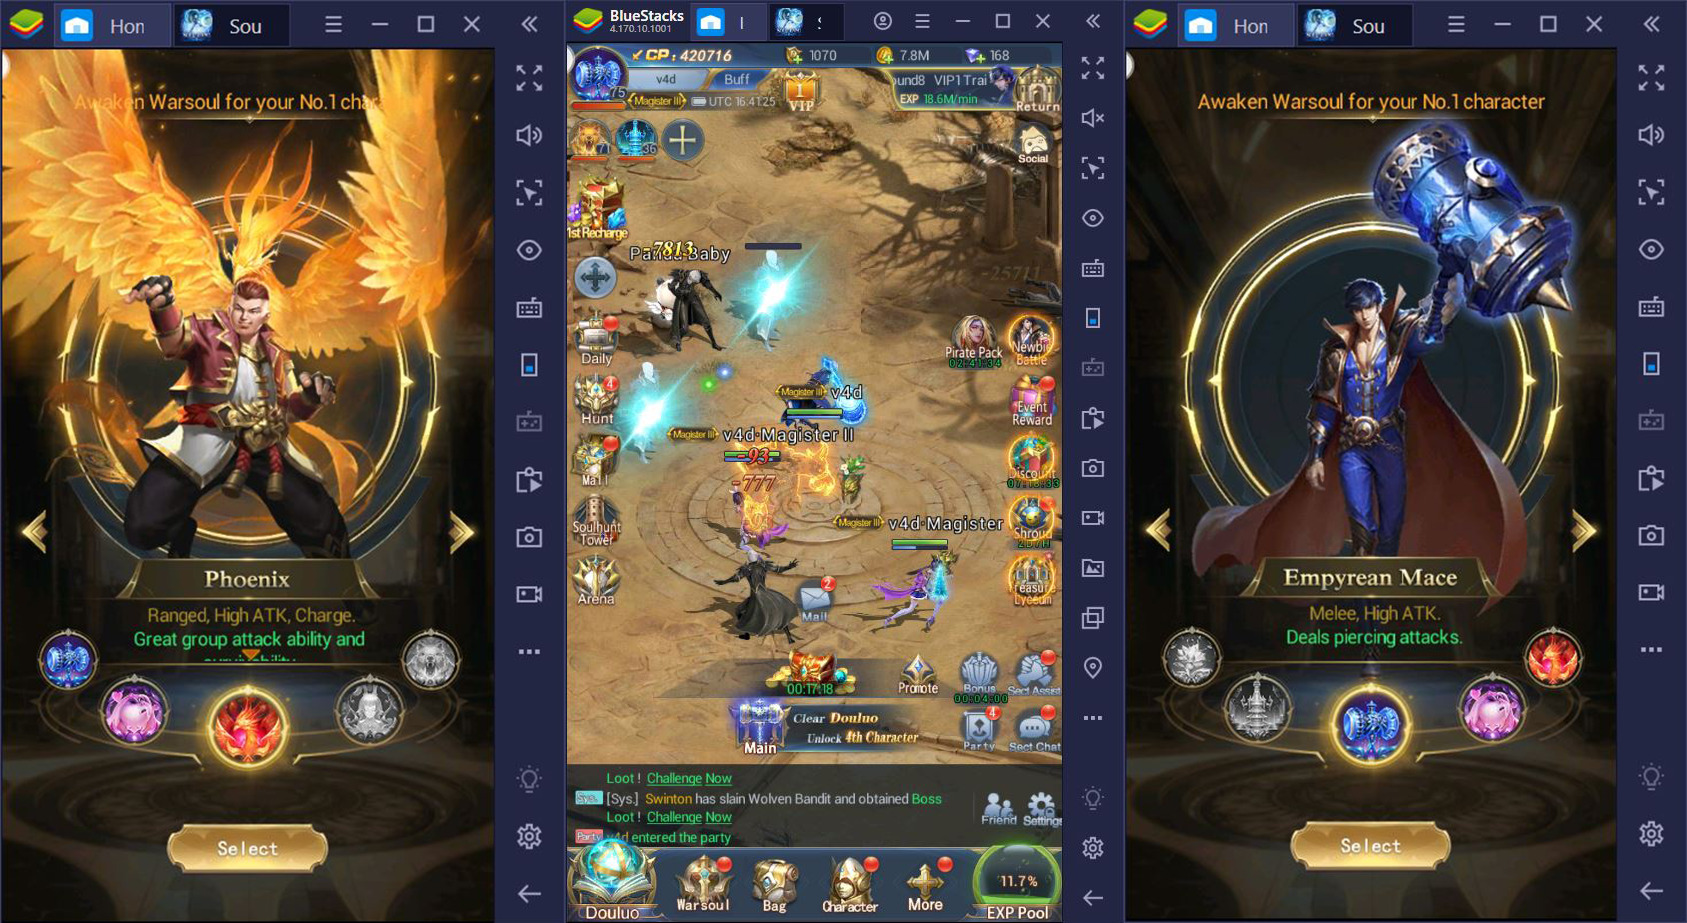 How to Play Soul Land: Awaken Warsoul on BlueStacks